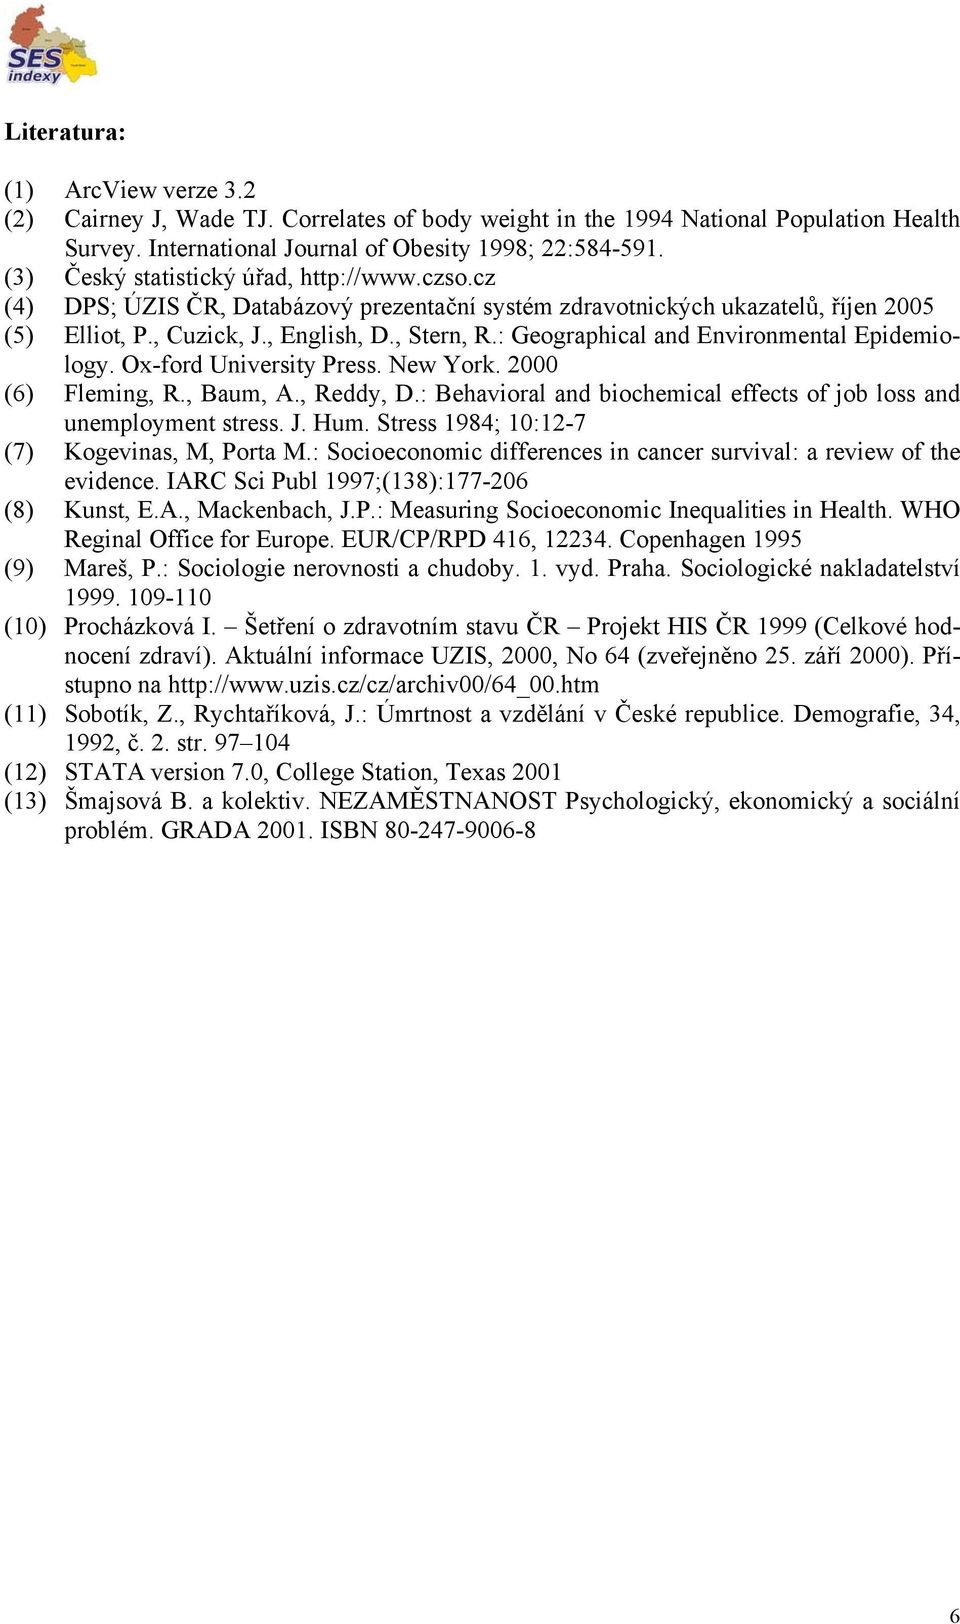 : Geographical and Environmental Epidemiology. Ox-ford University Press. New York. 2000 (6) Fleming, R., Baum, A., Reddy, D.: Behavioral and biochemical effects of job loss and unemployment stress. J.